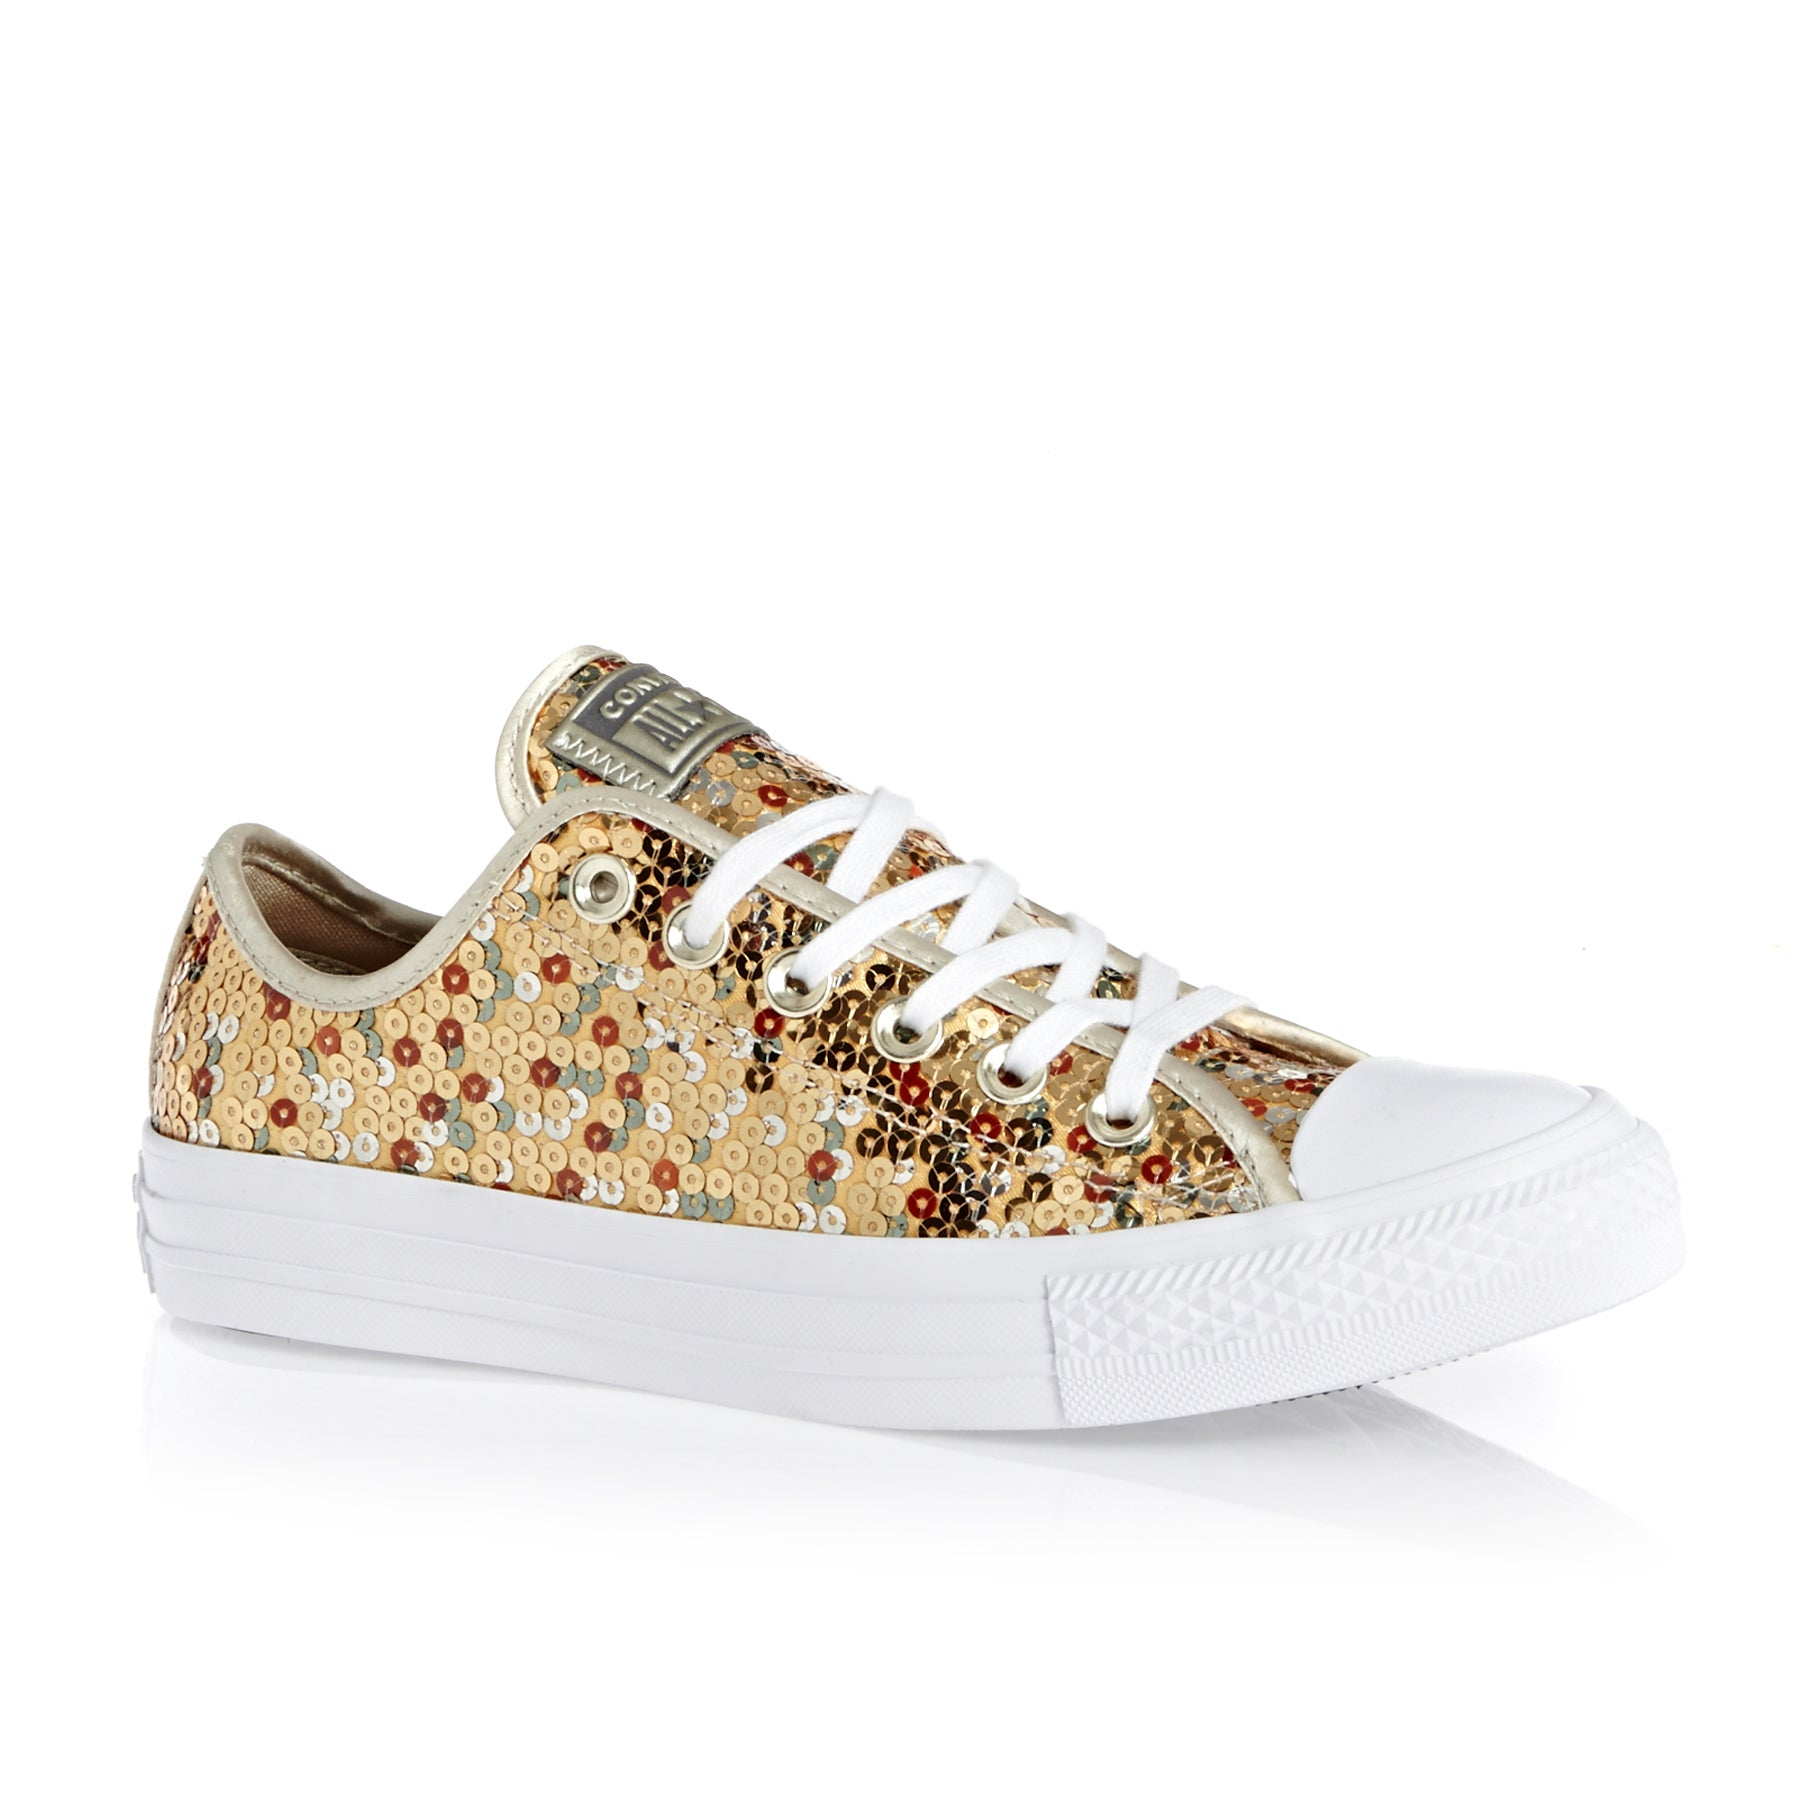 Converse Chuck Taylor All Star Ox Womens Shoes - Gold Light Gold White